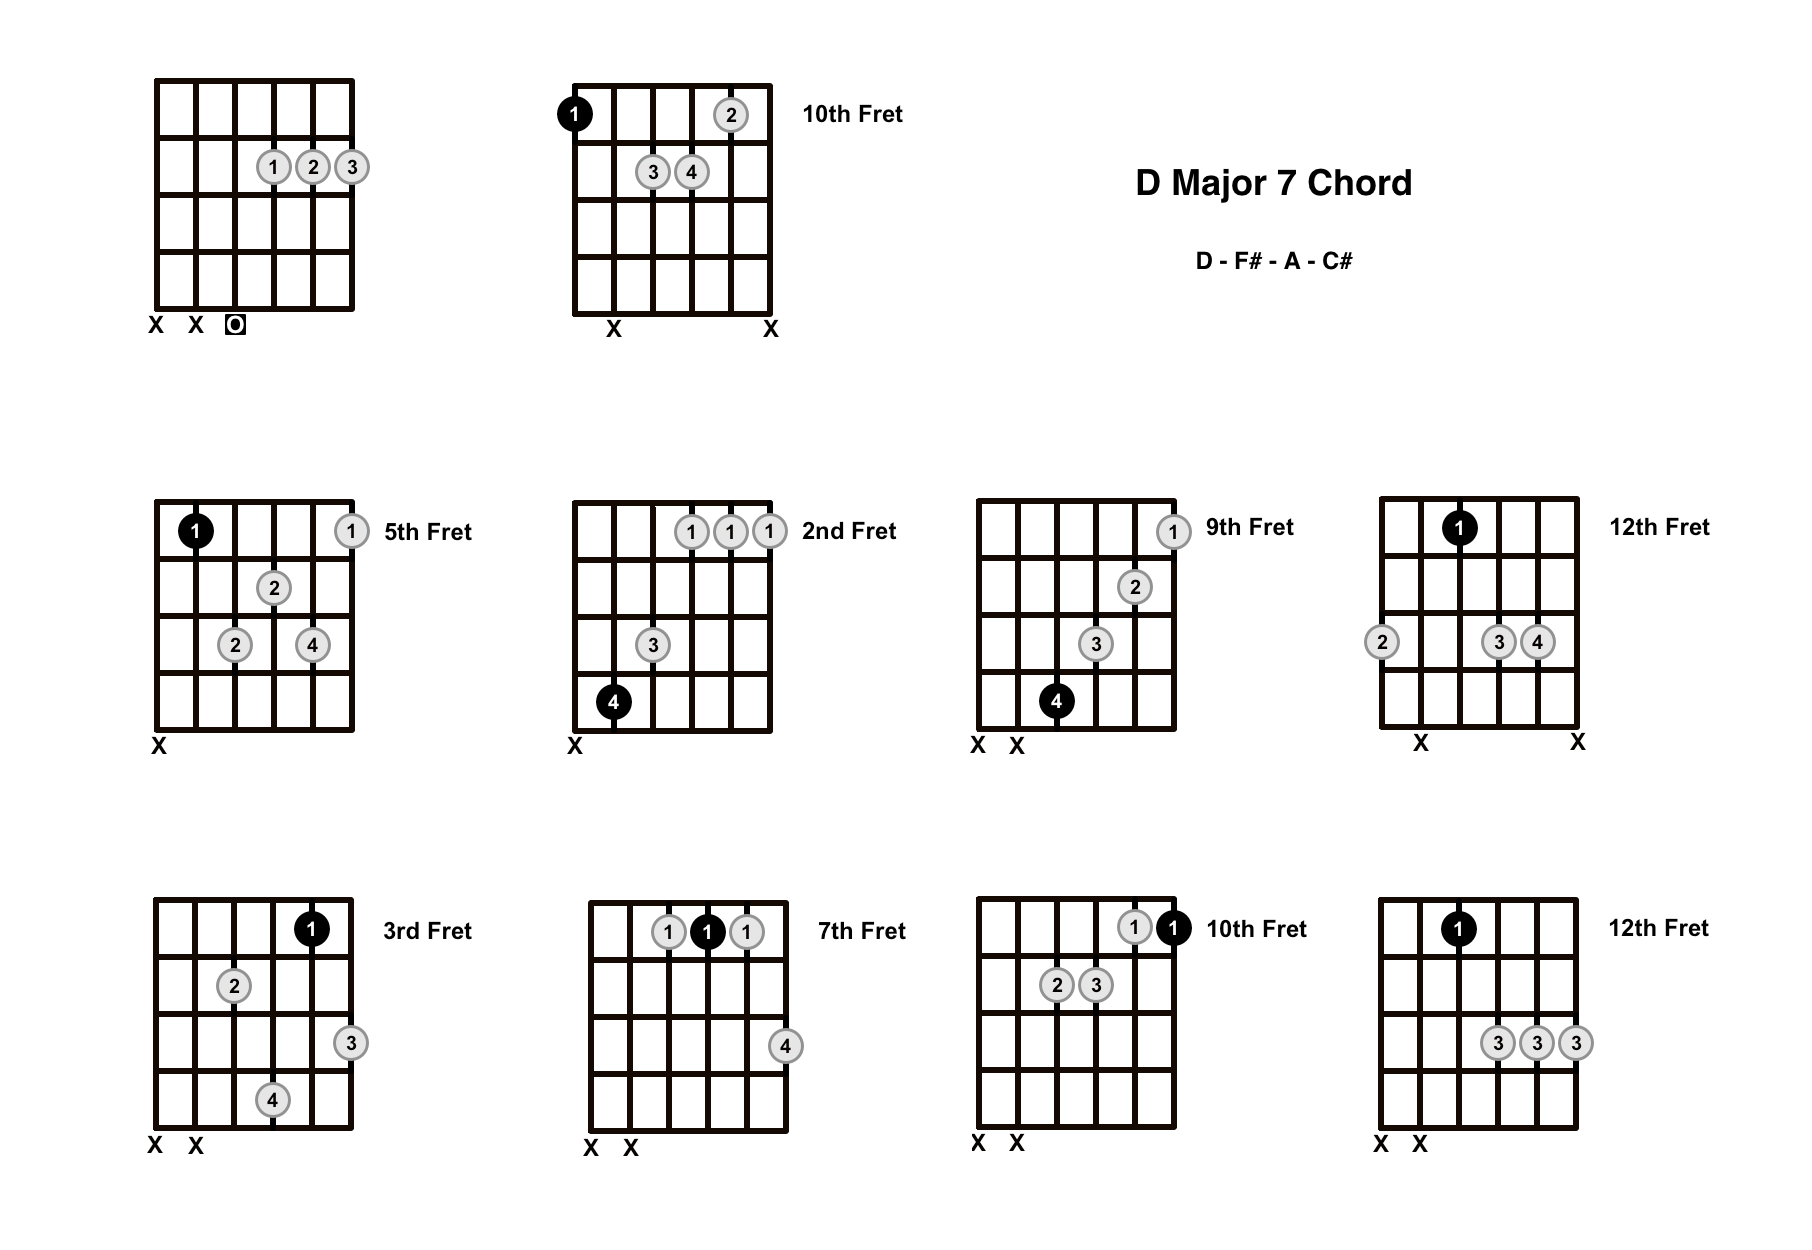 D Major 7 Chord On The Guitar (D Maj 7) – Diagrams, Finger Positions and Theory